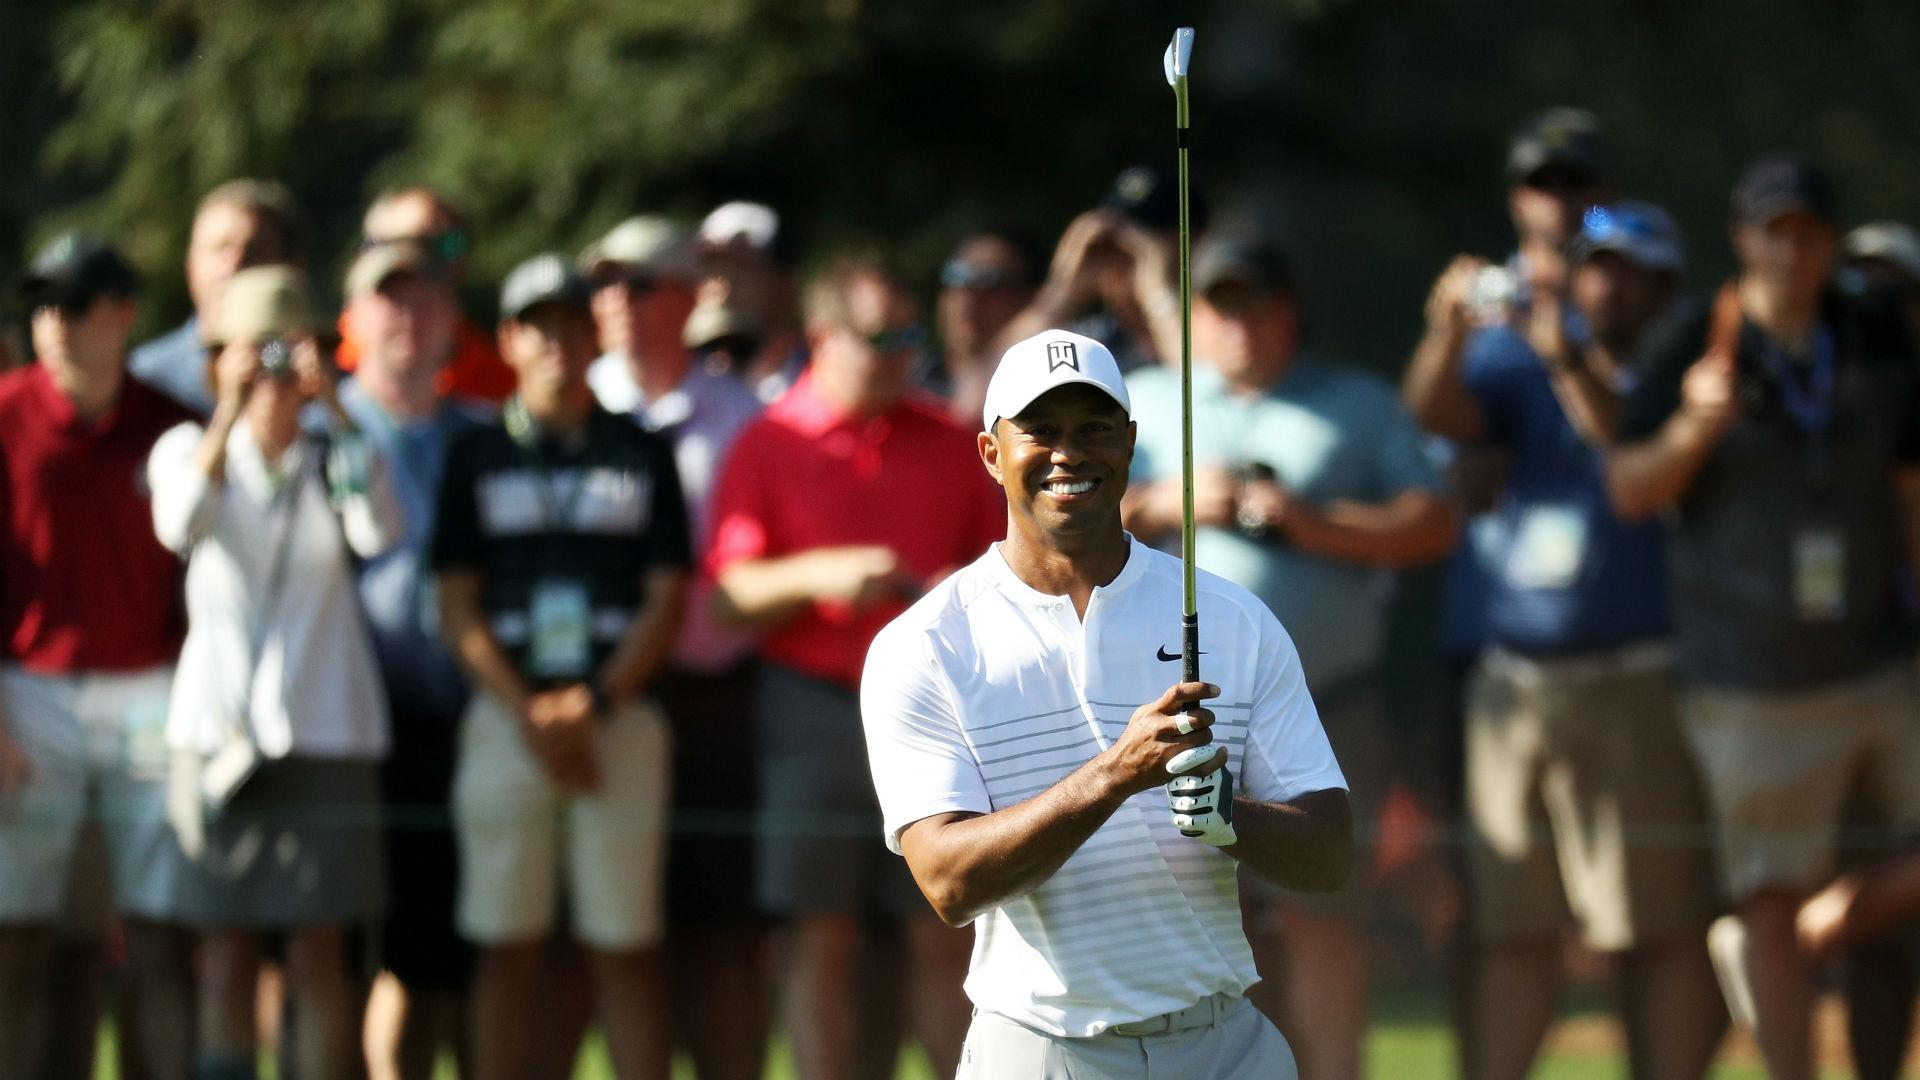 woods grouped with fleetwood and leishman at masters